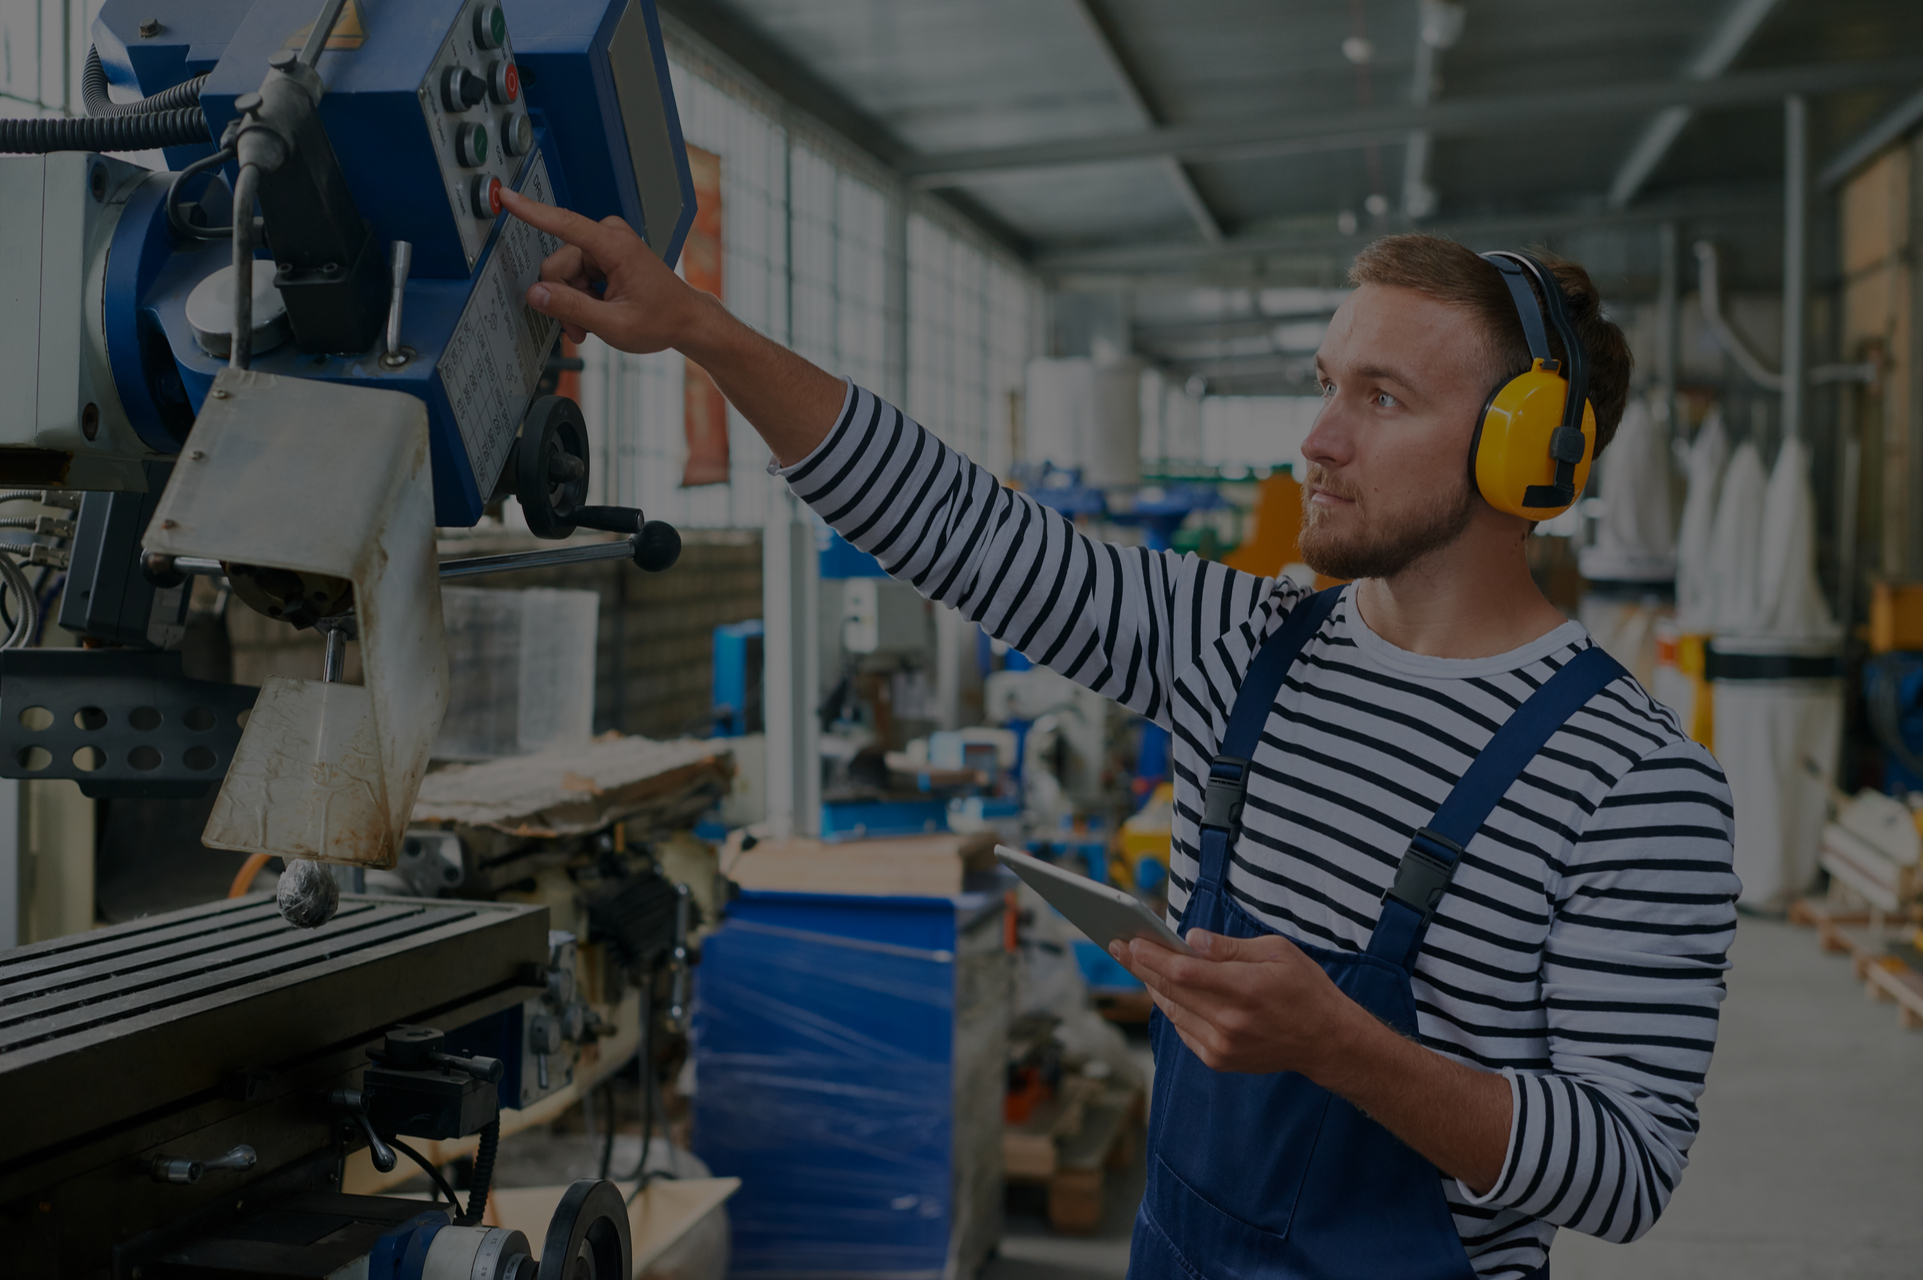 The Latest H&S Prosecutions In Manufacturing